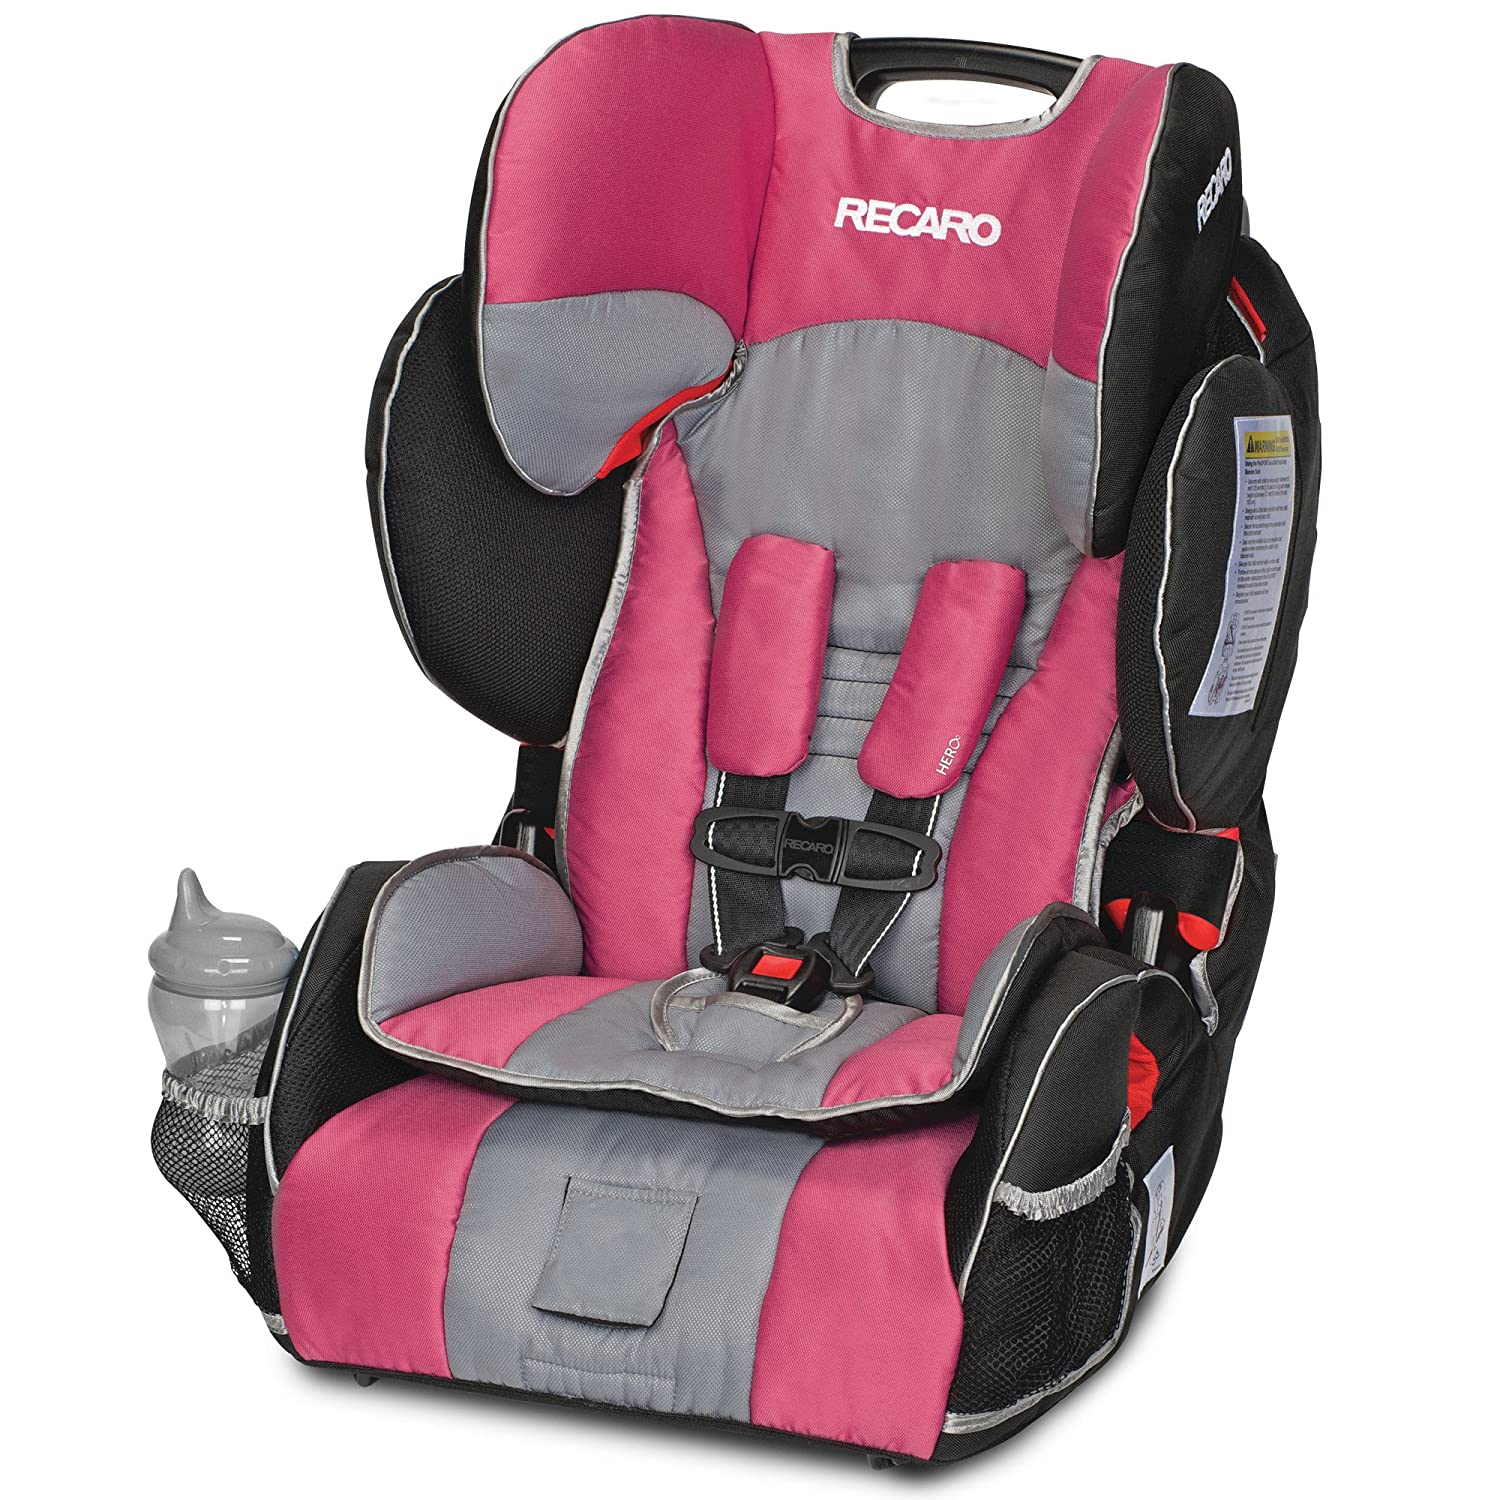 Amazon.com  RECARO Performance SPORT Combination Harness to Booster Rose  Child Safety Booster Car Seats  Baby  sc 1 st  Amazon.com & Amazon.com : RECARO Performance SPORT Combination Harness to ... islam-shia.org